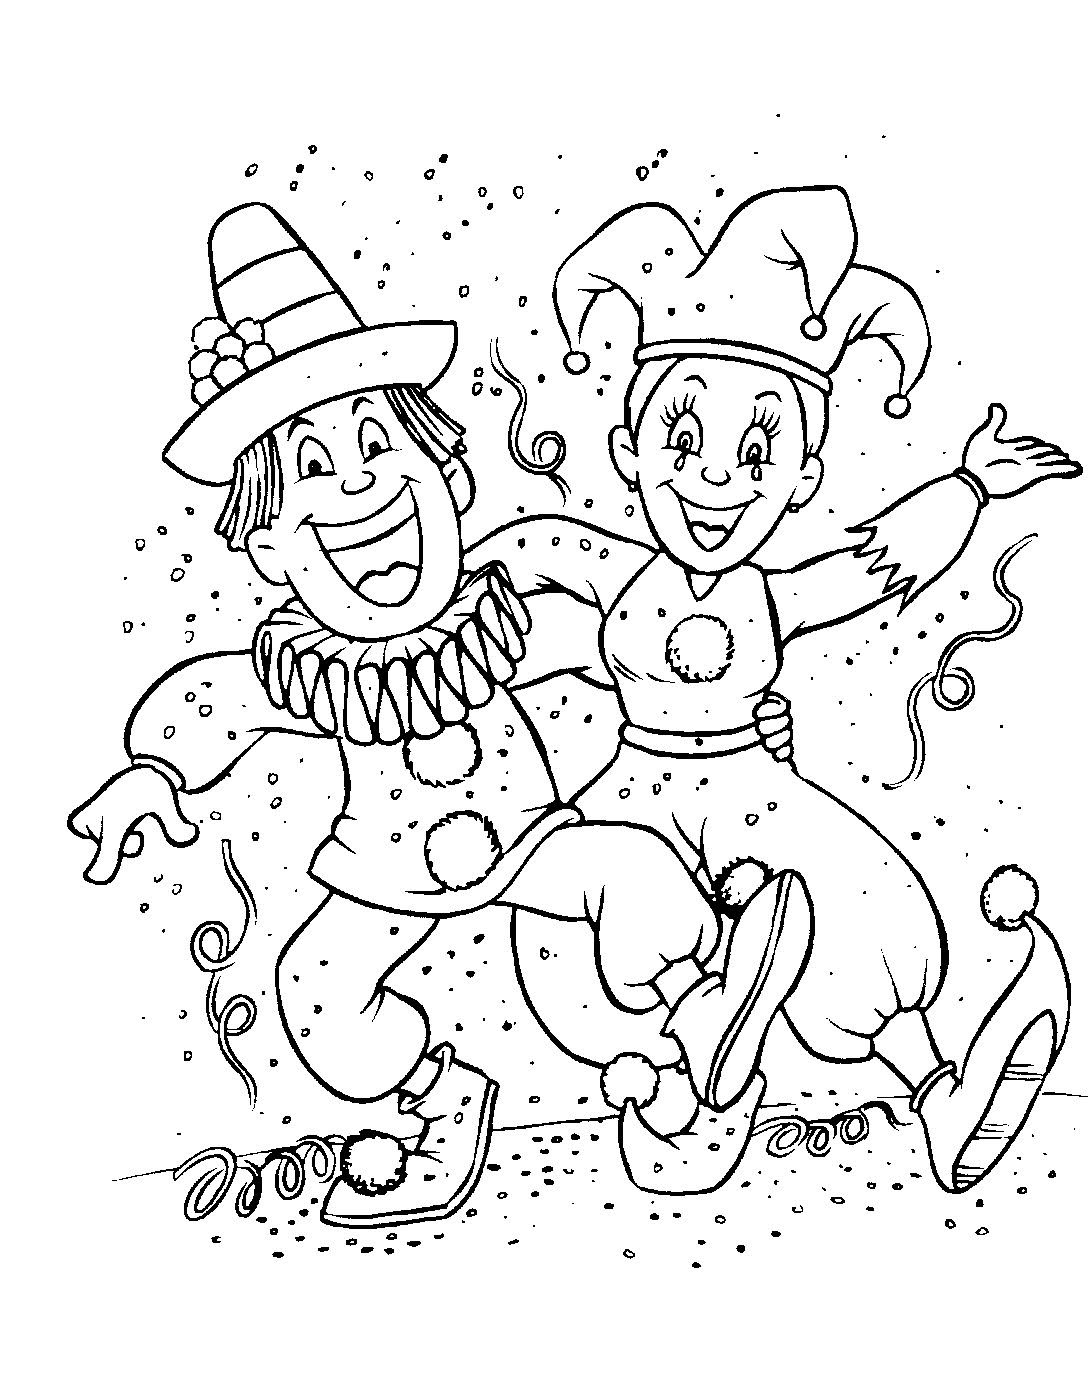 Funny Carnival coloring page